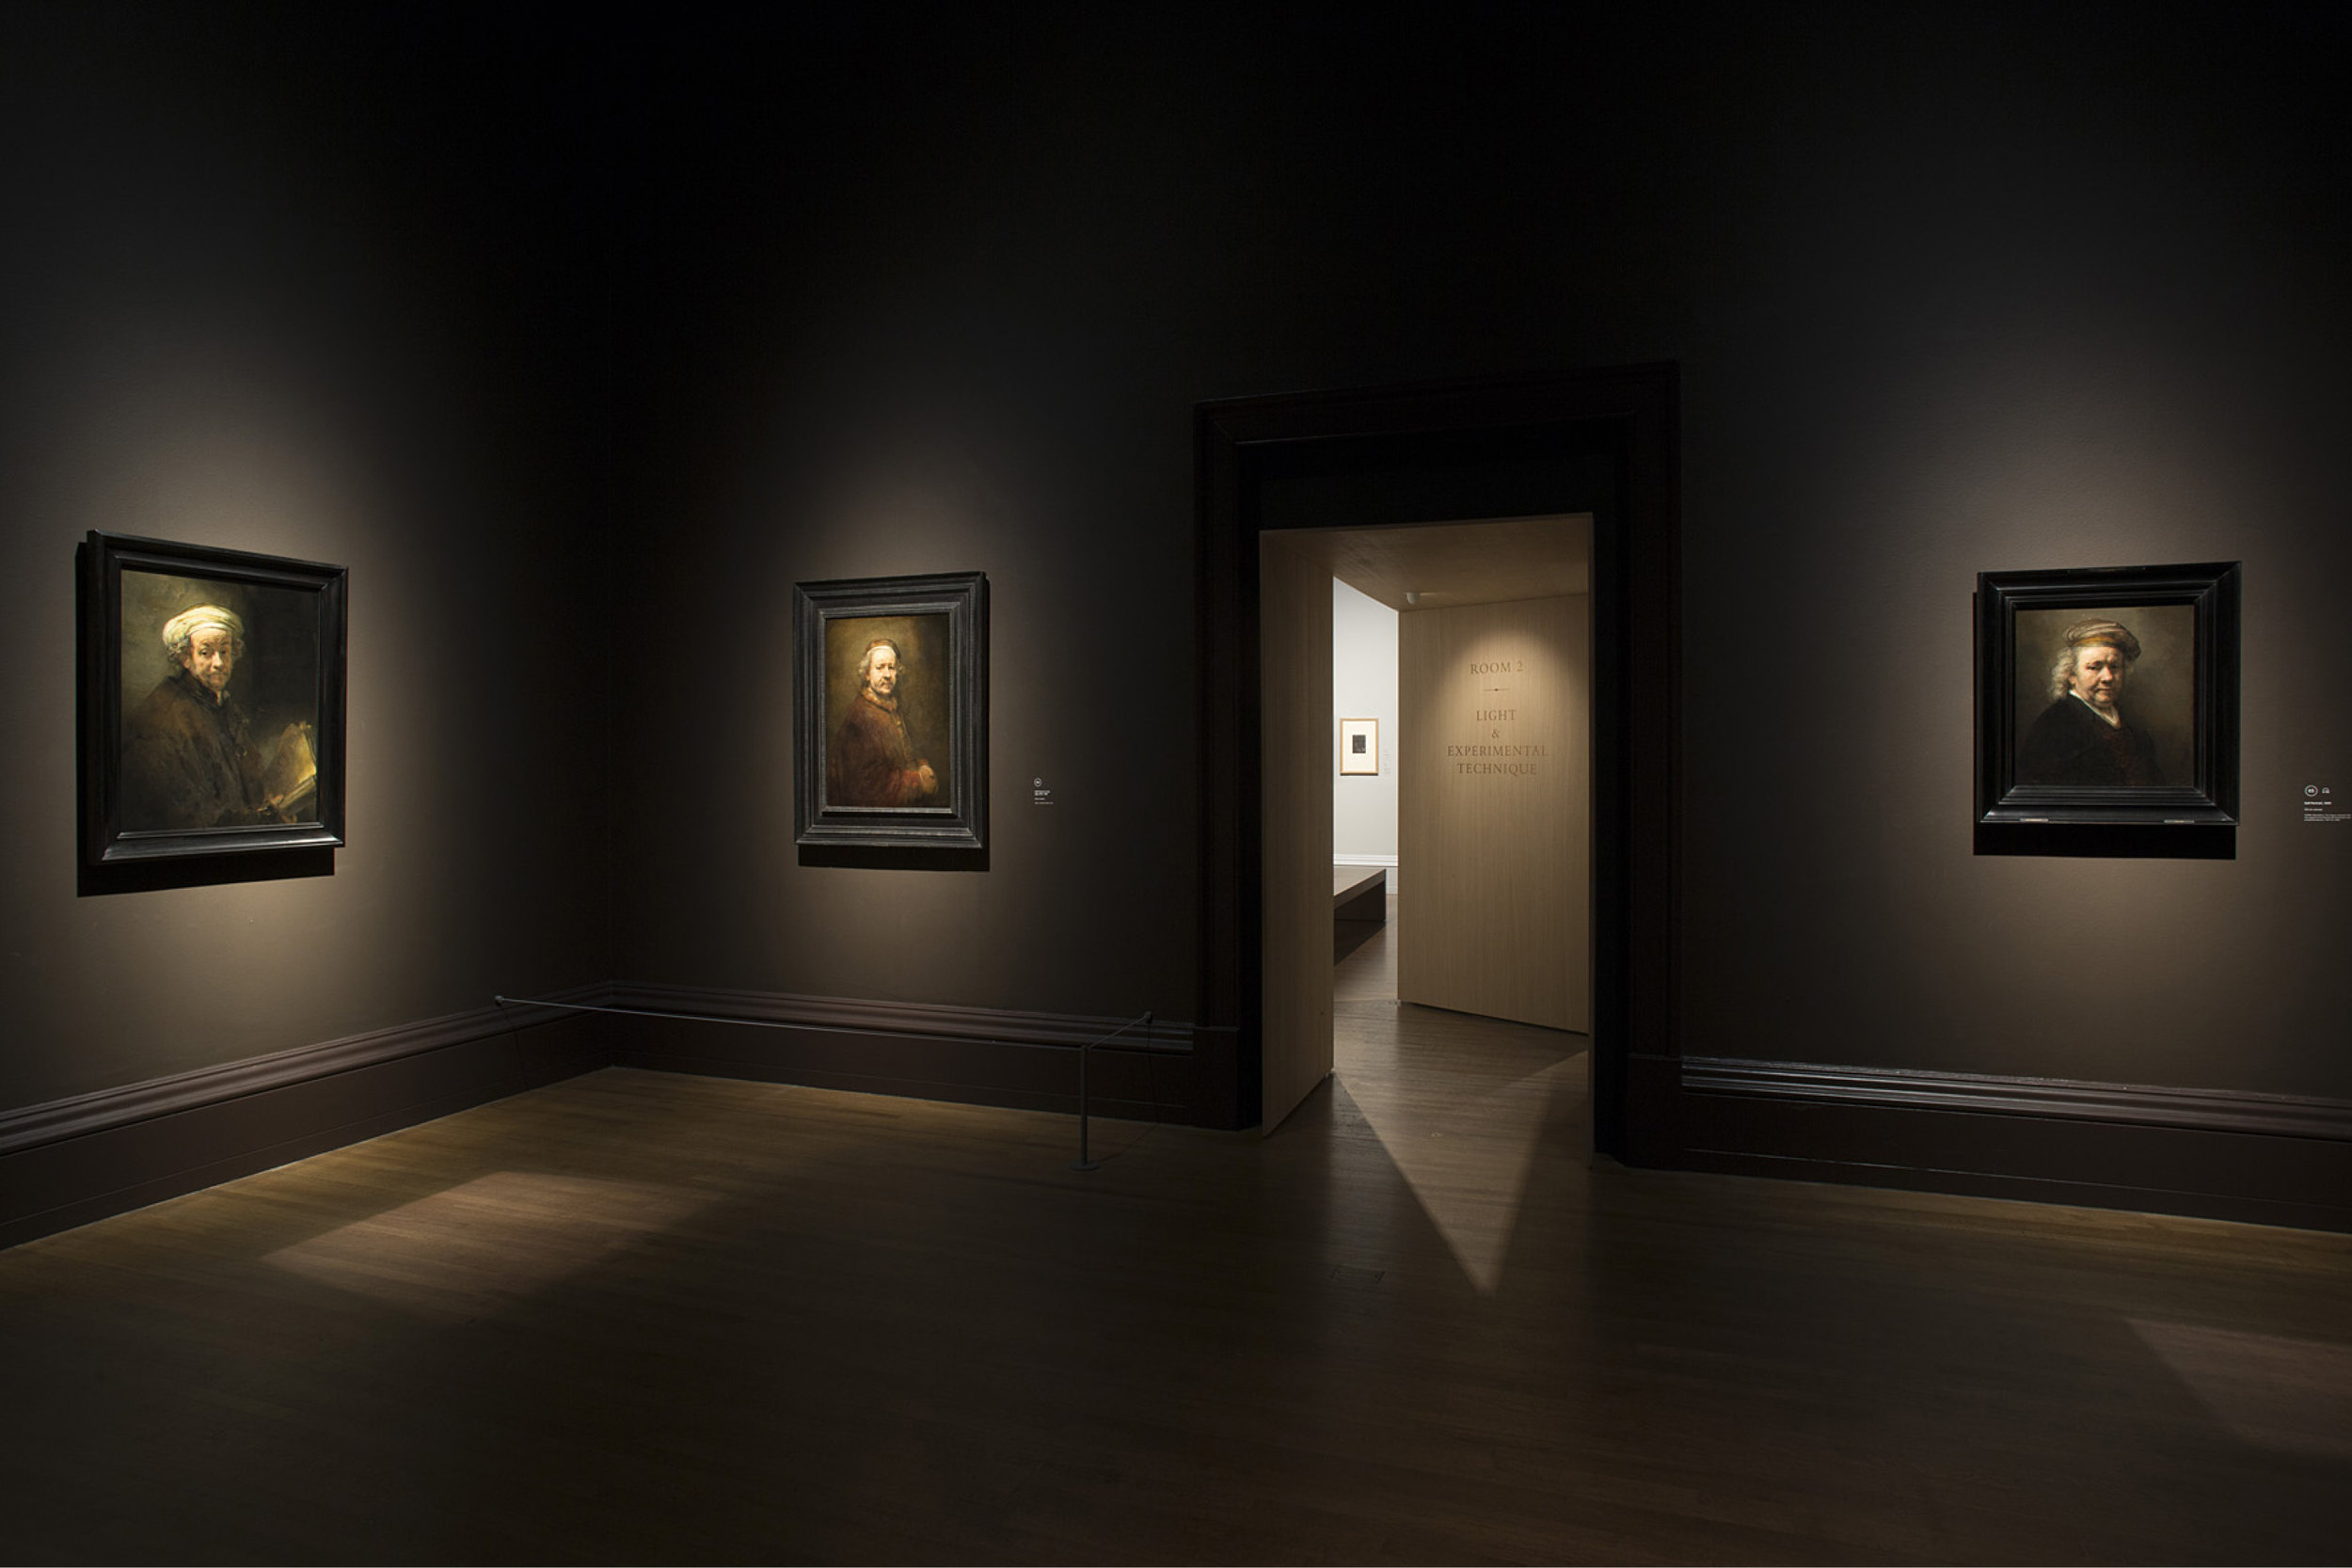 Photograph of Rembrandt Paintings at the National Gallery